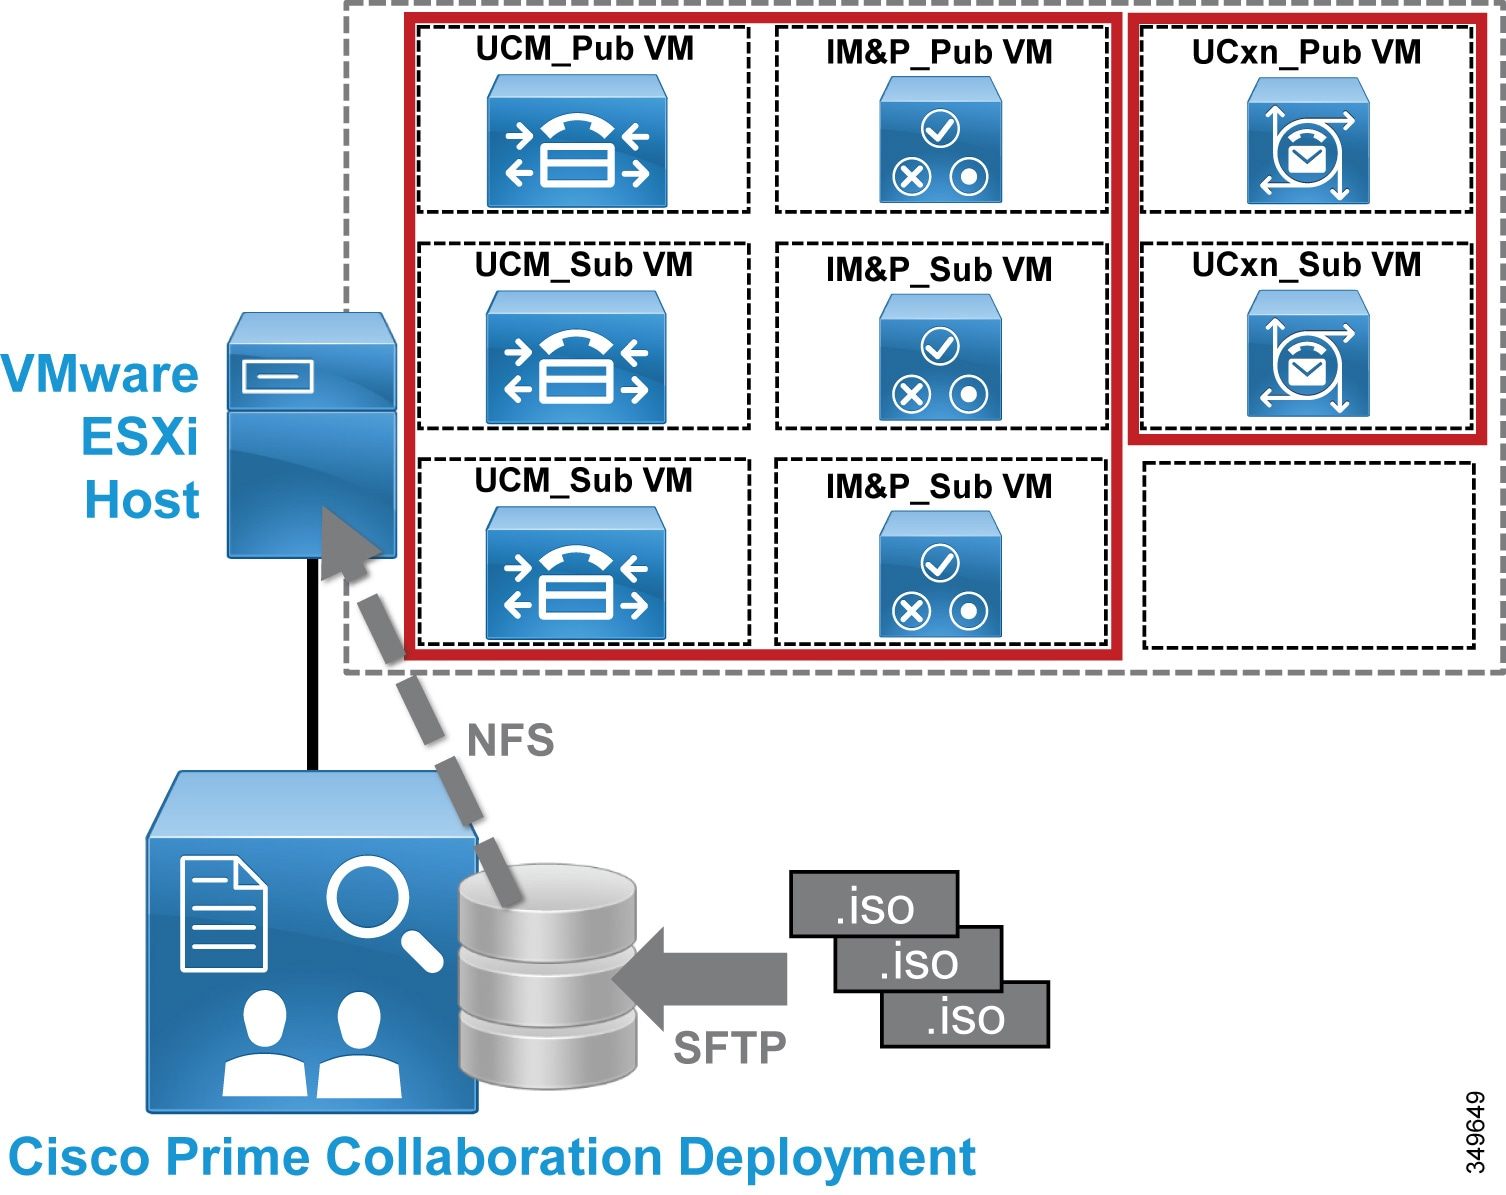 cisco preferred architecture for enterprise collaboration 11 6 cisco